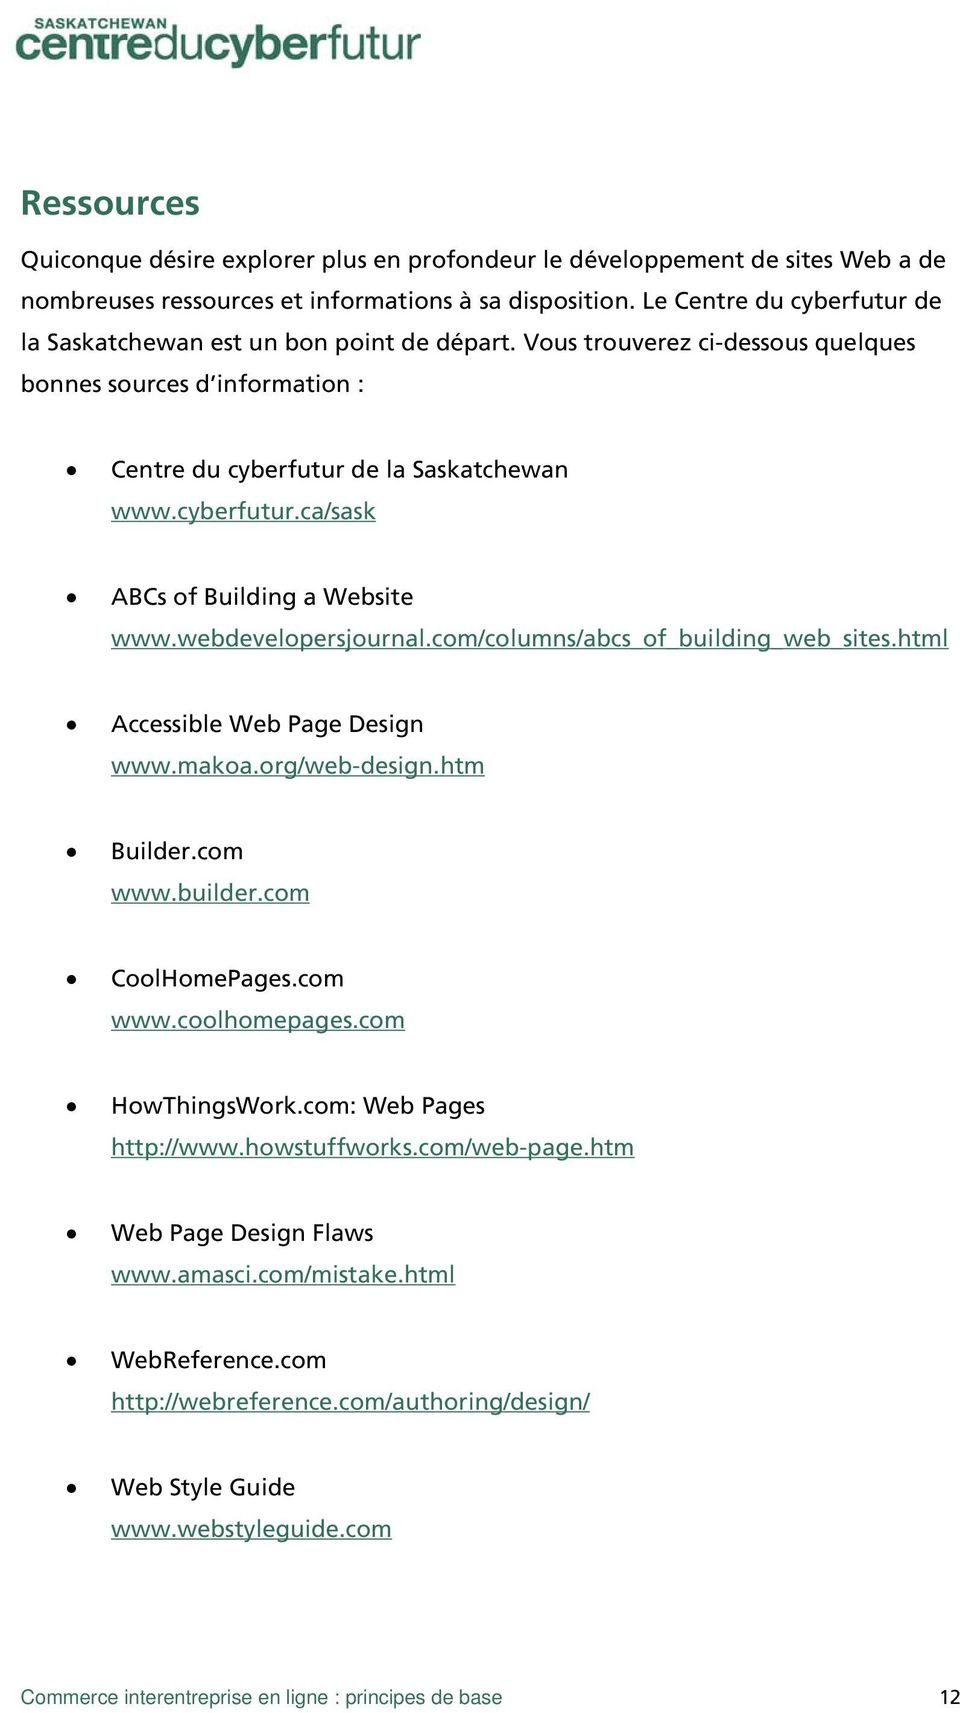 webdevelopersjournal.com/columns/abcs_of_building_web_sites.html Accessible Web Page Design www.makoa.org/web-design.htm Builder.com www.builder.com CoolHomePages.com www.coolhomepages.